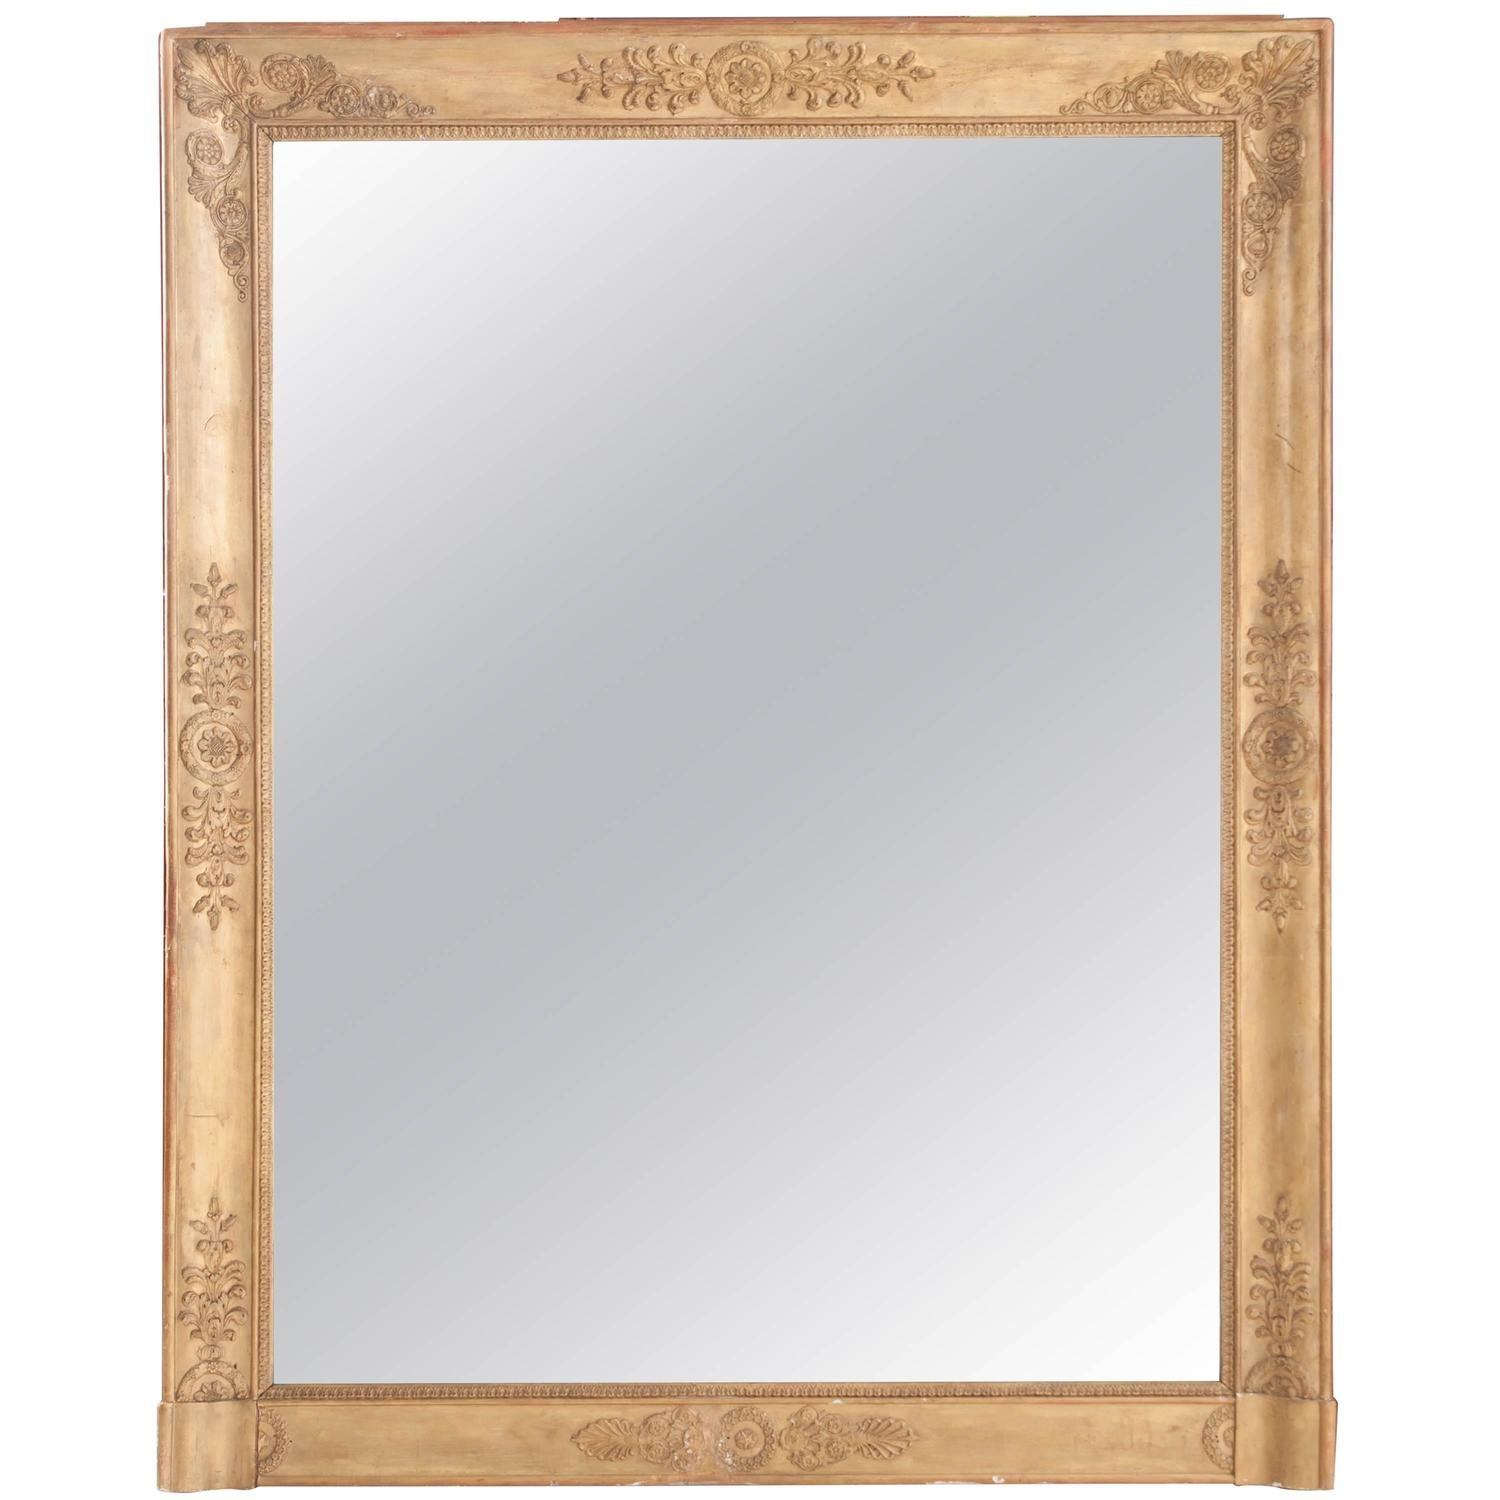 French 19th Century Empire Gold Gilt Mirror With Regard To Gold Gilt Mirrors (Image 4 of 15)